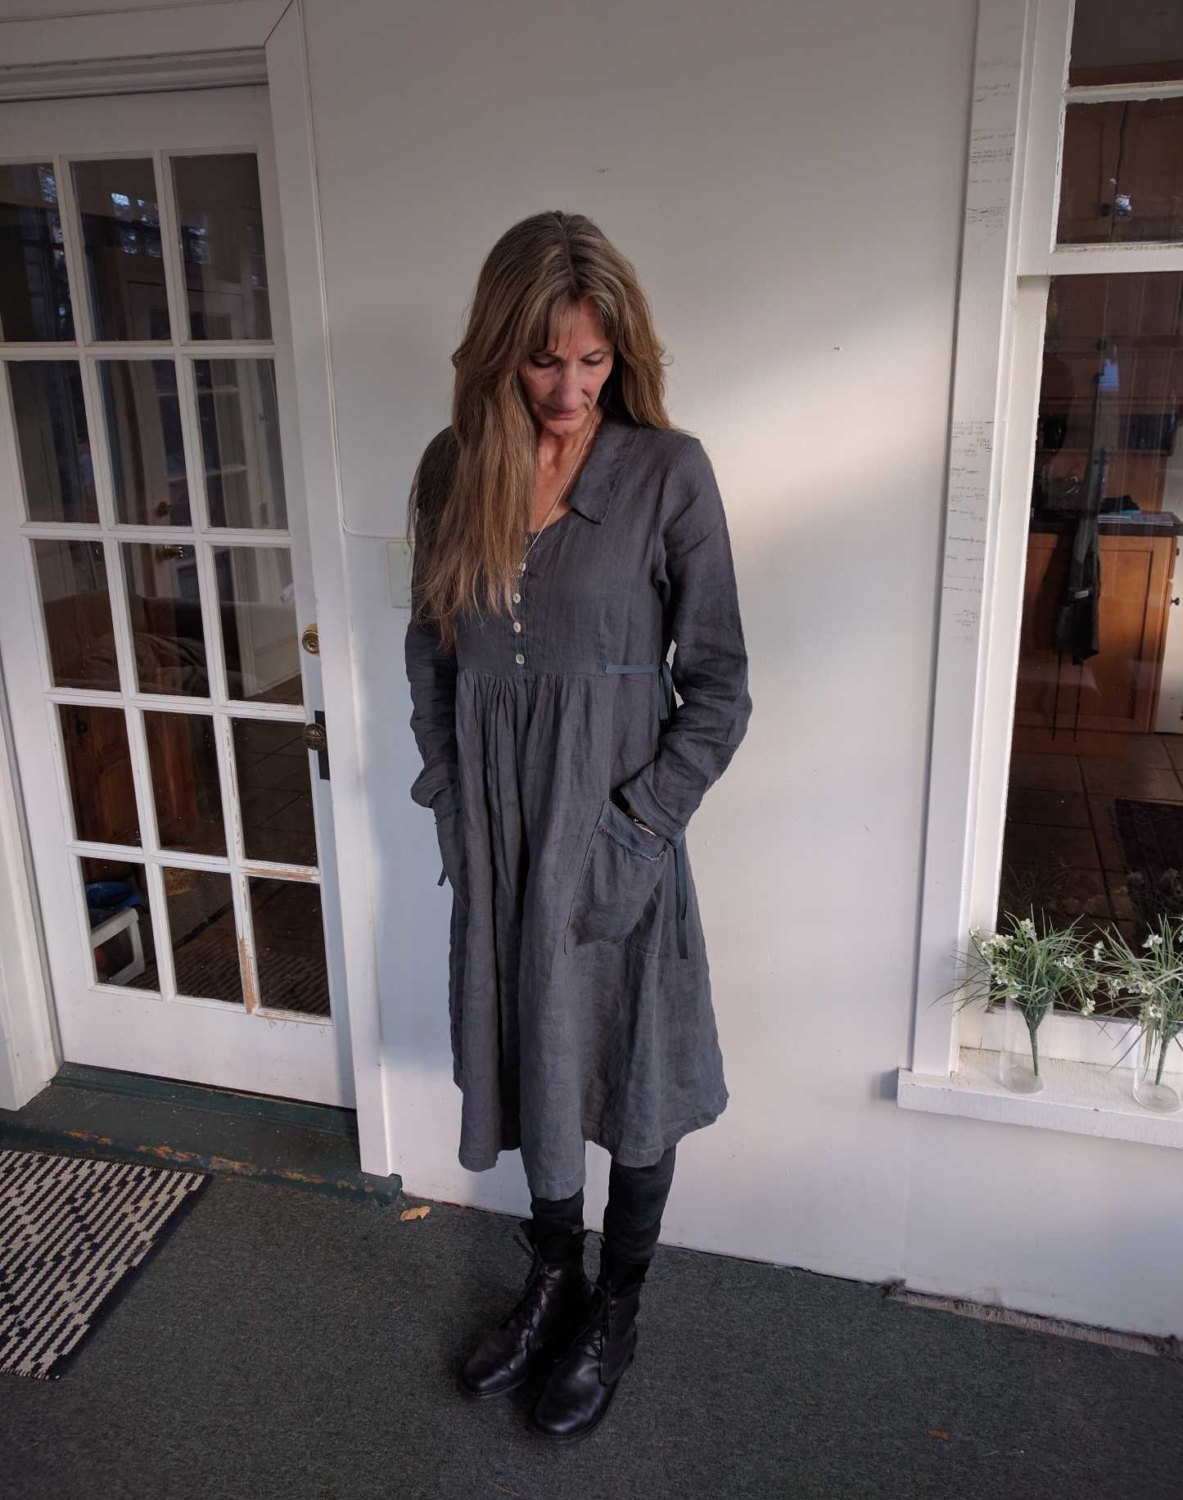 Charcoal Grey 100% linen 'Caroline' dress. This dress has a sweet collar, slightly raised bodice...